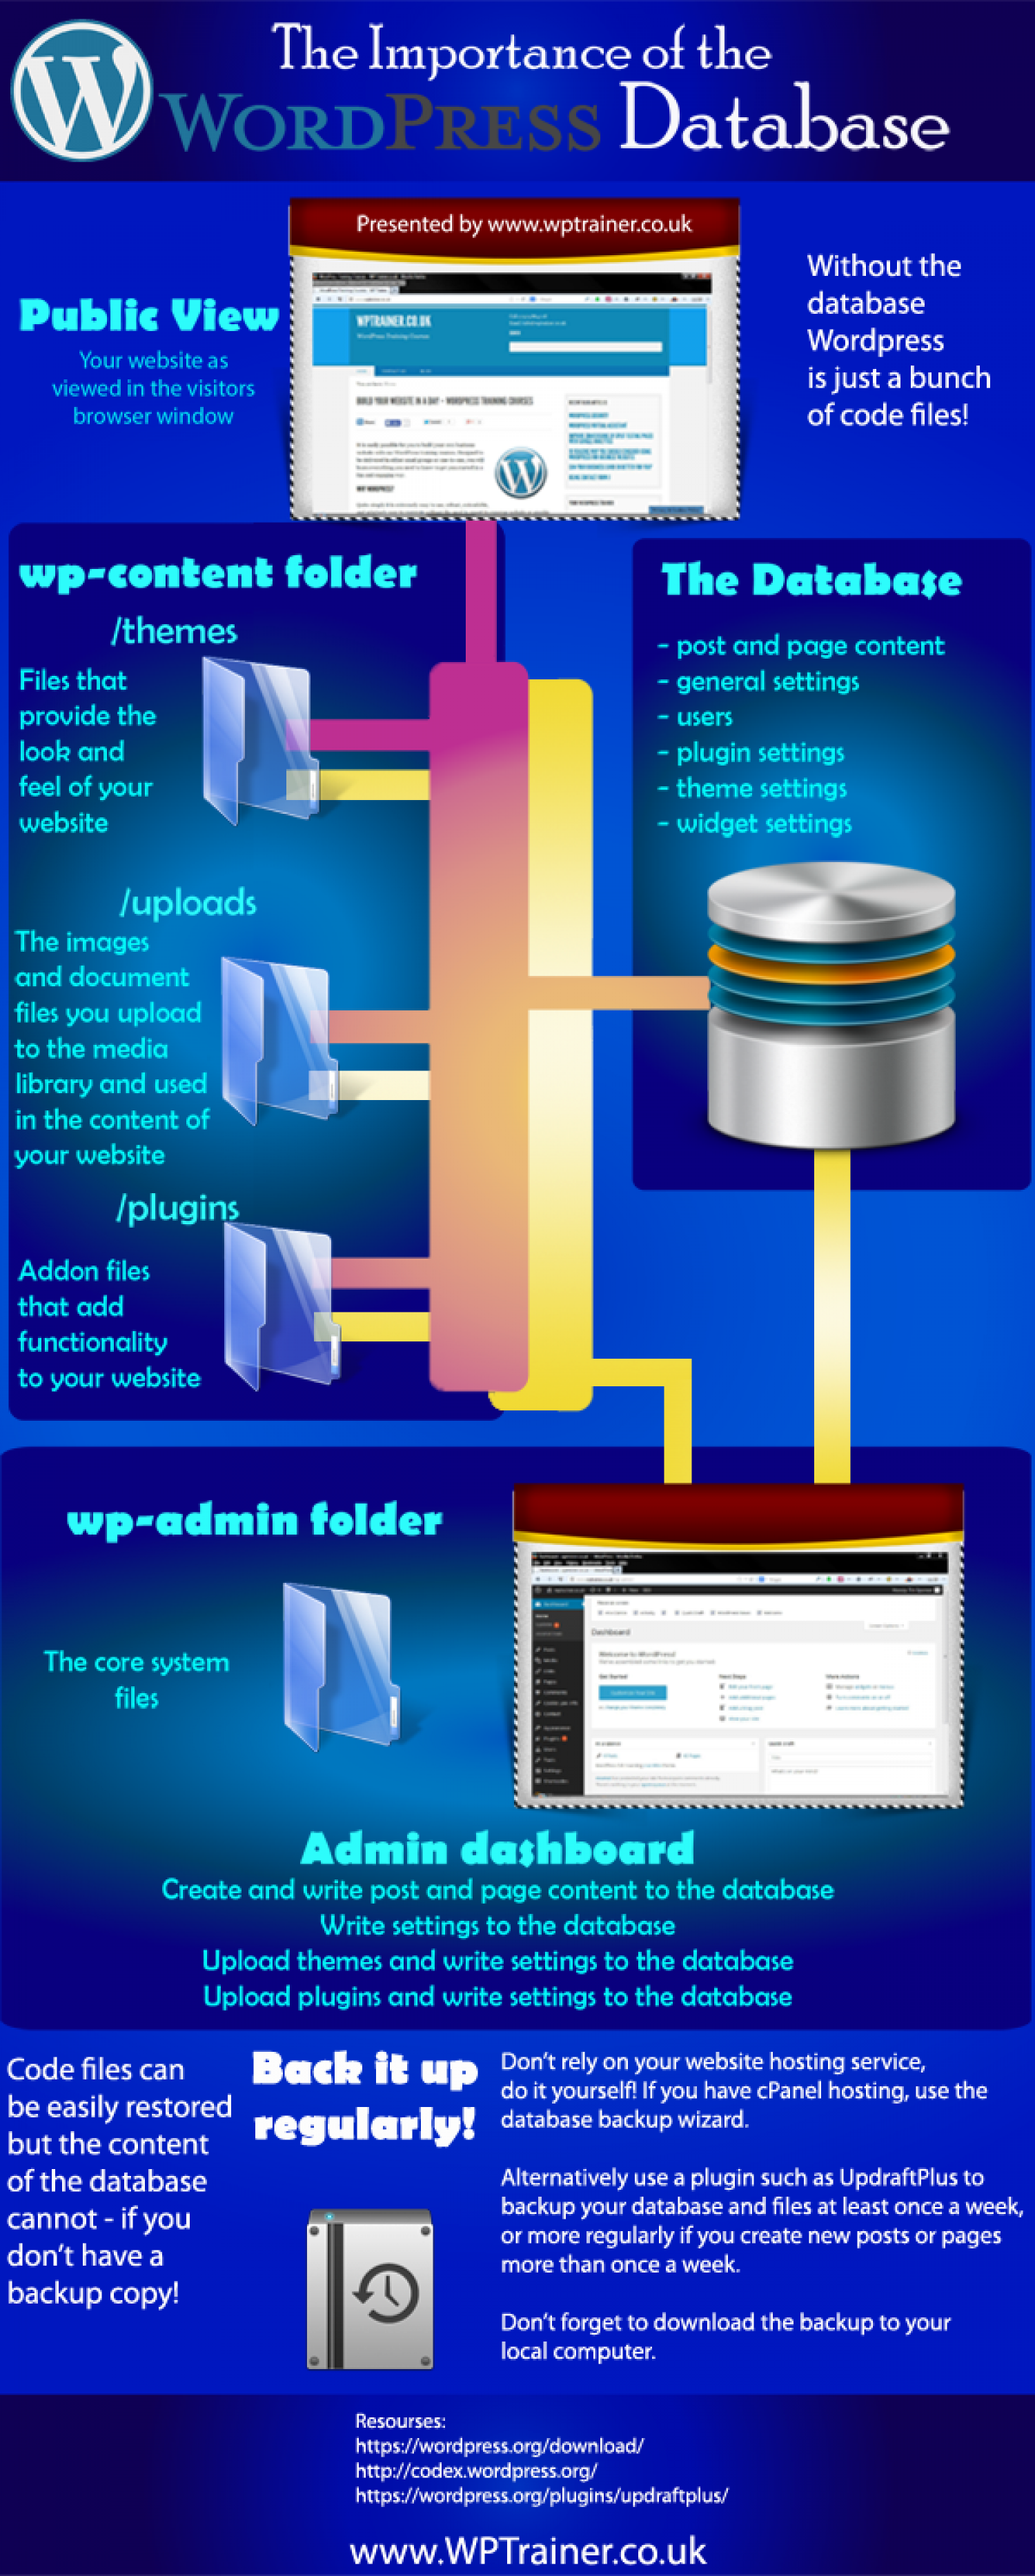 The importance of the WordPress Database Infographic